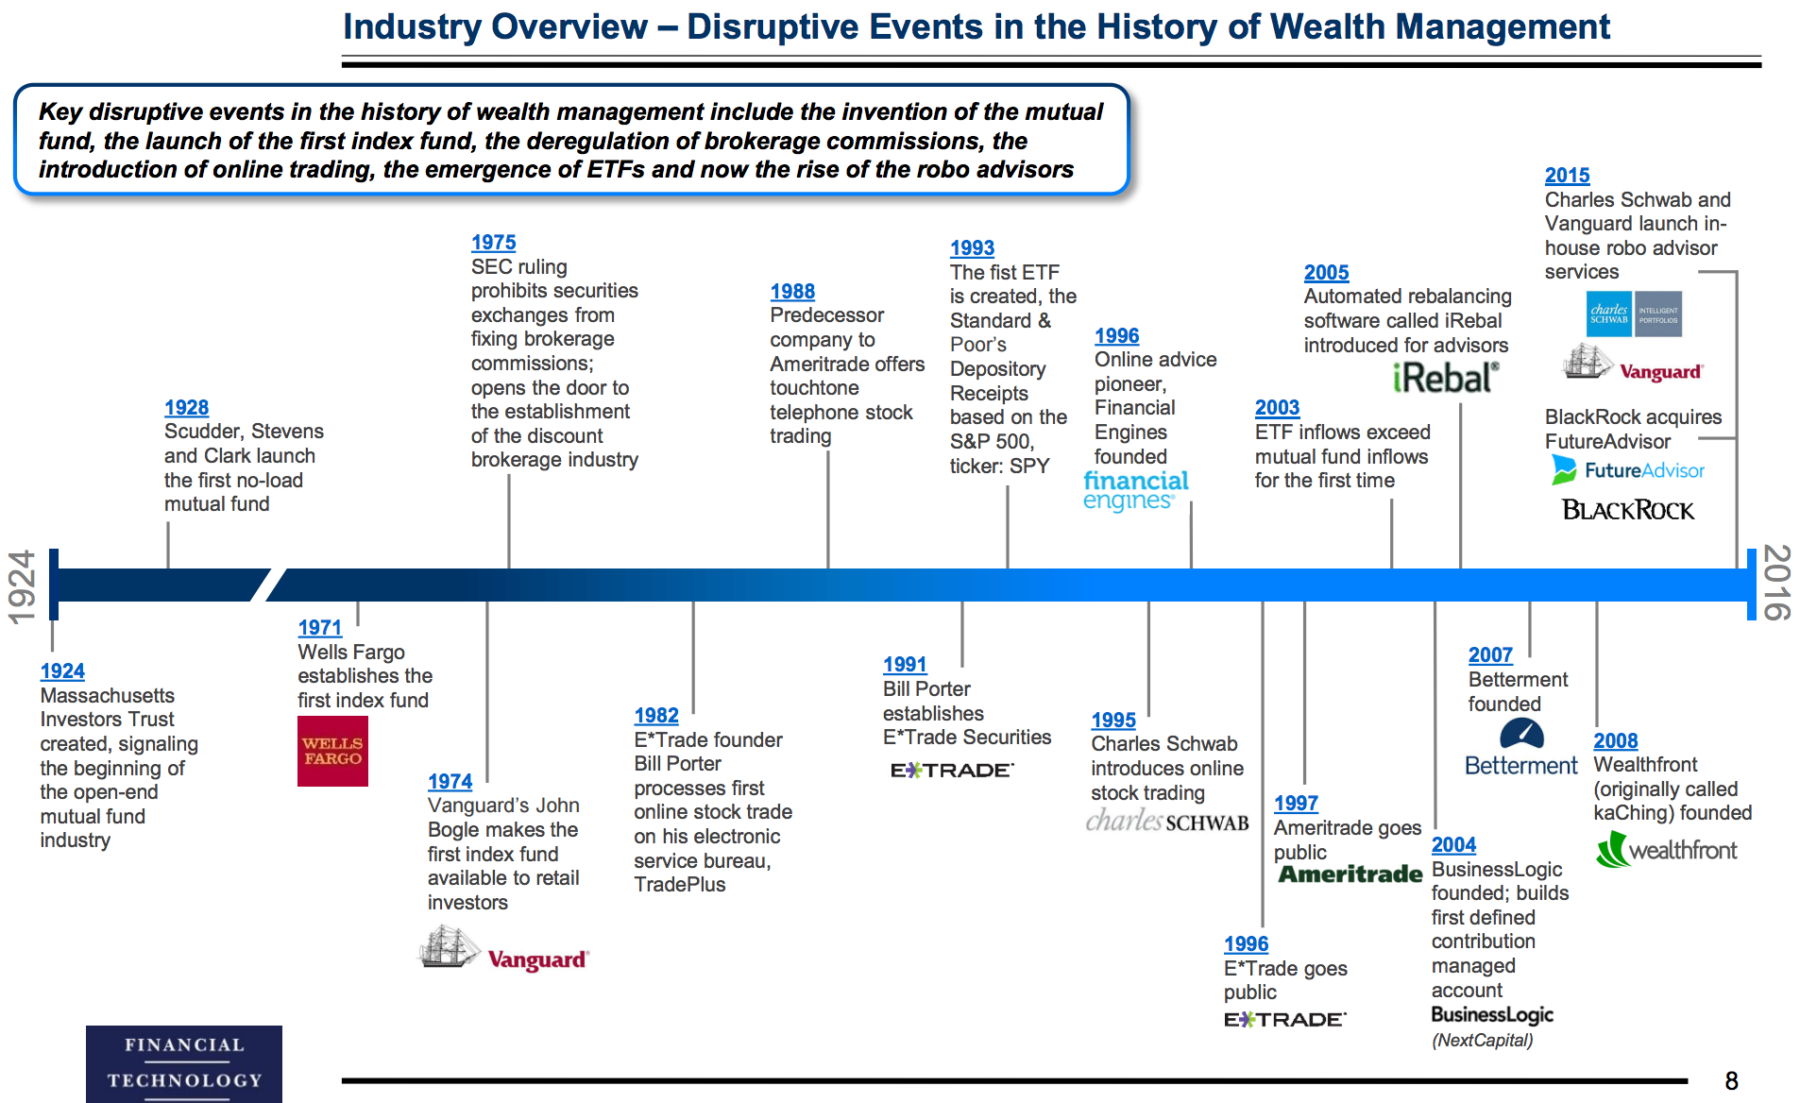 Technology Management Image: Impact Of Technology On Wealth Management